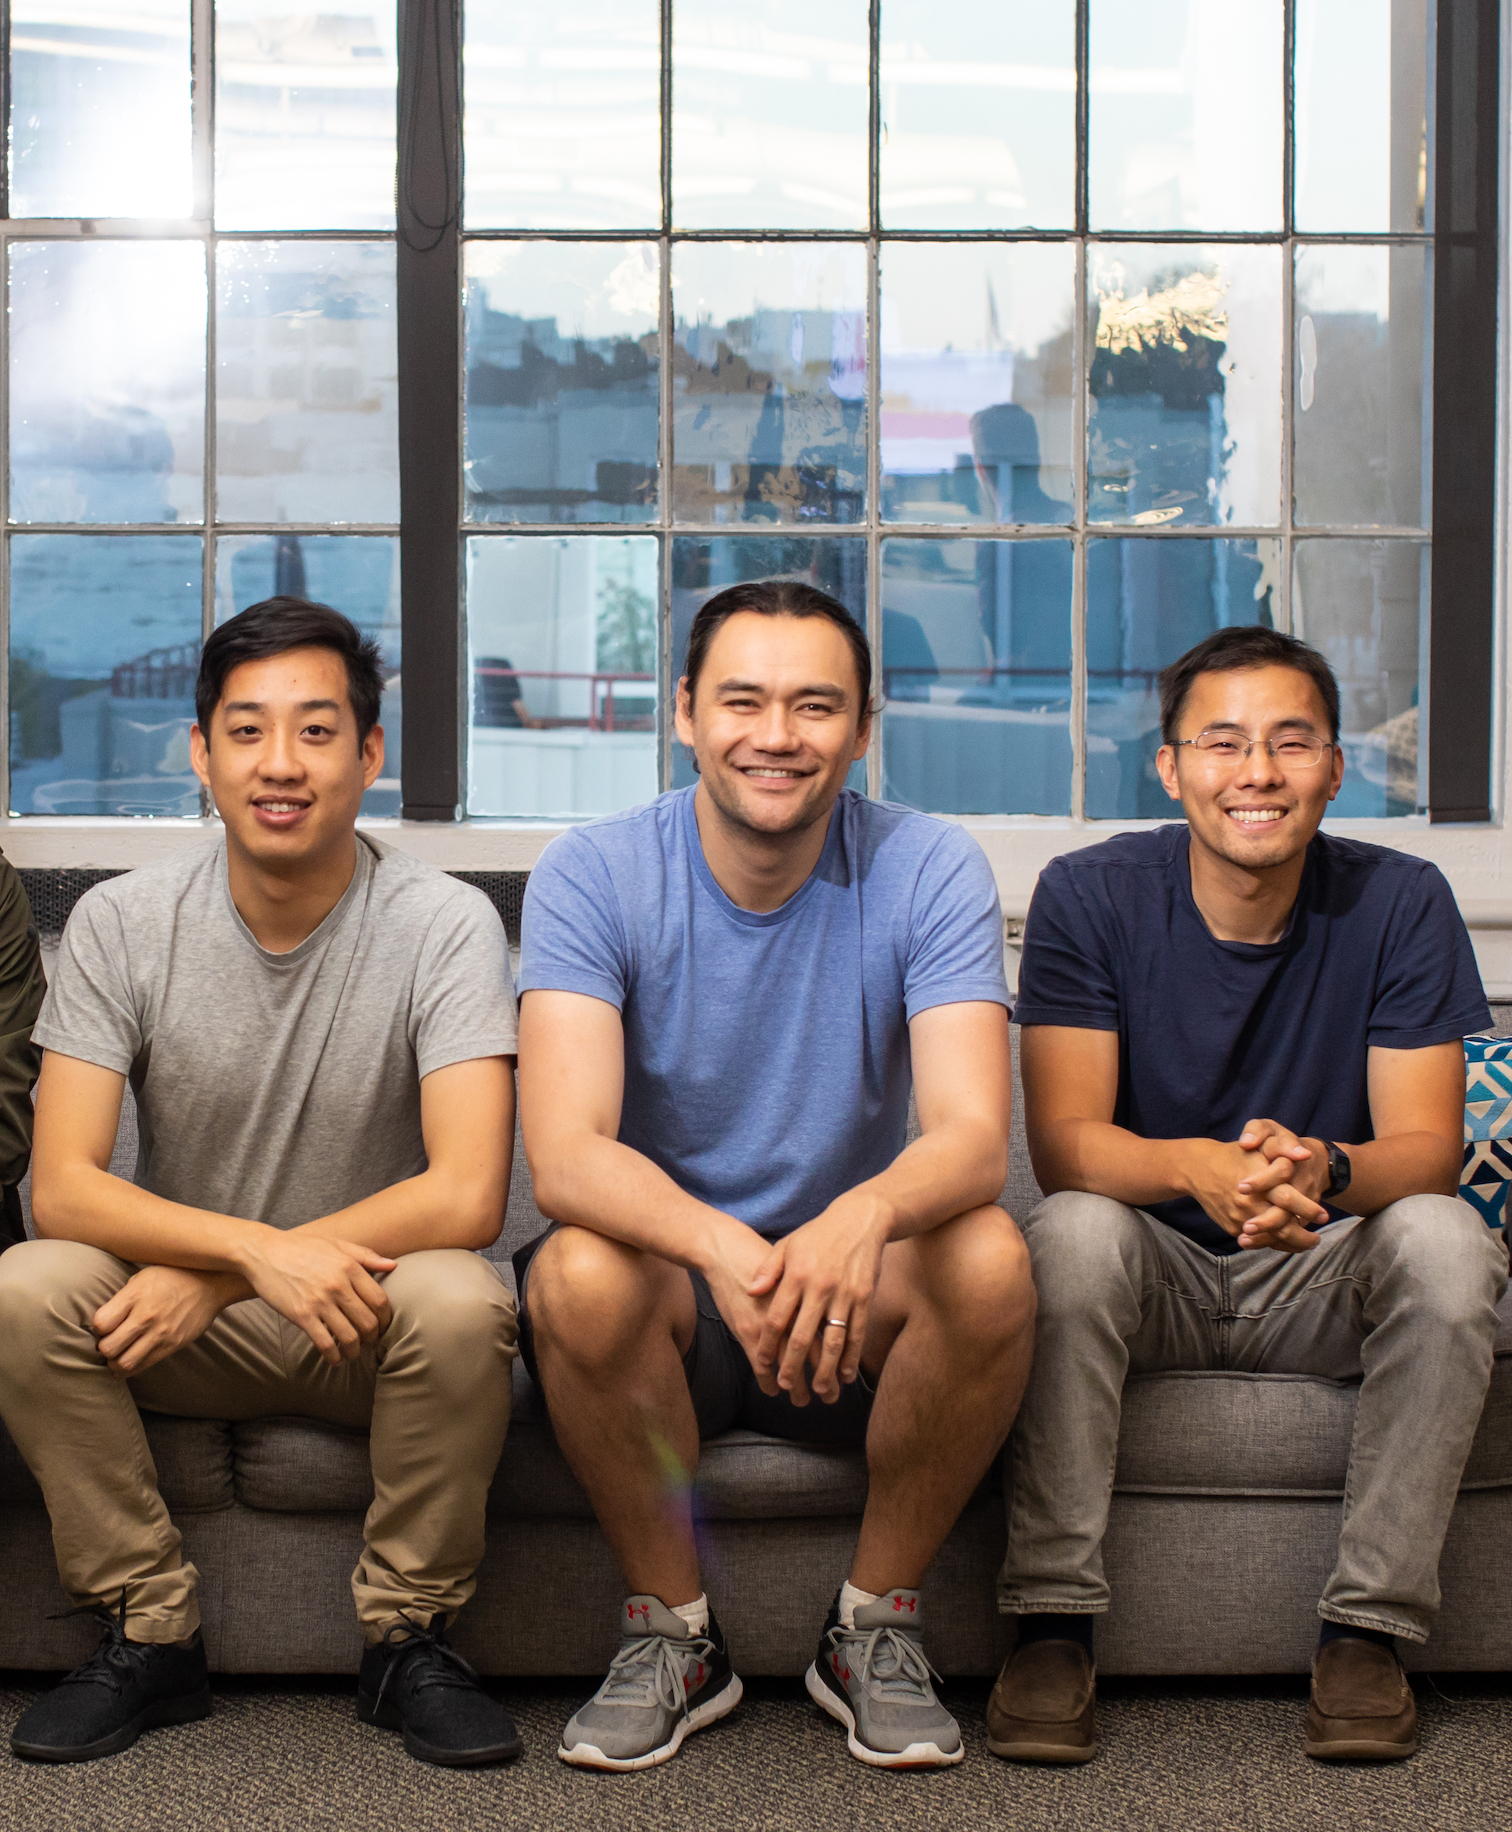 CaptivateIQ founders sitting together on a couch and smiling